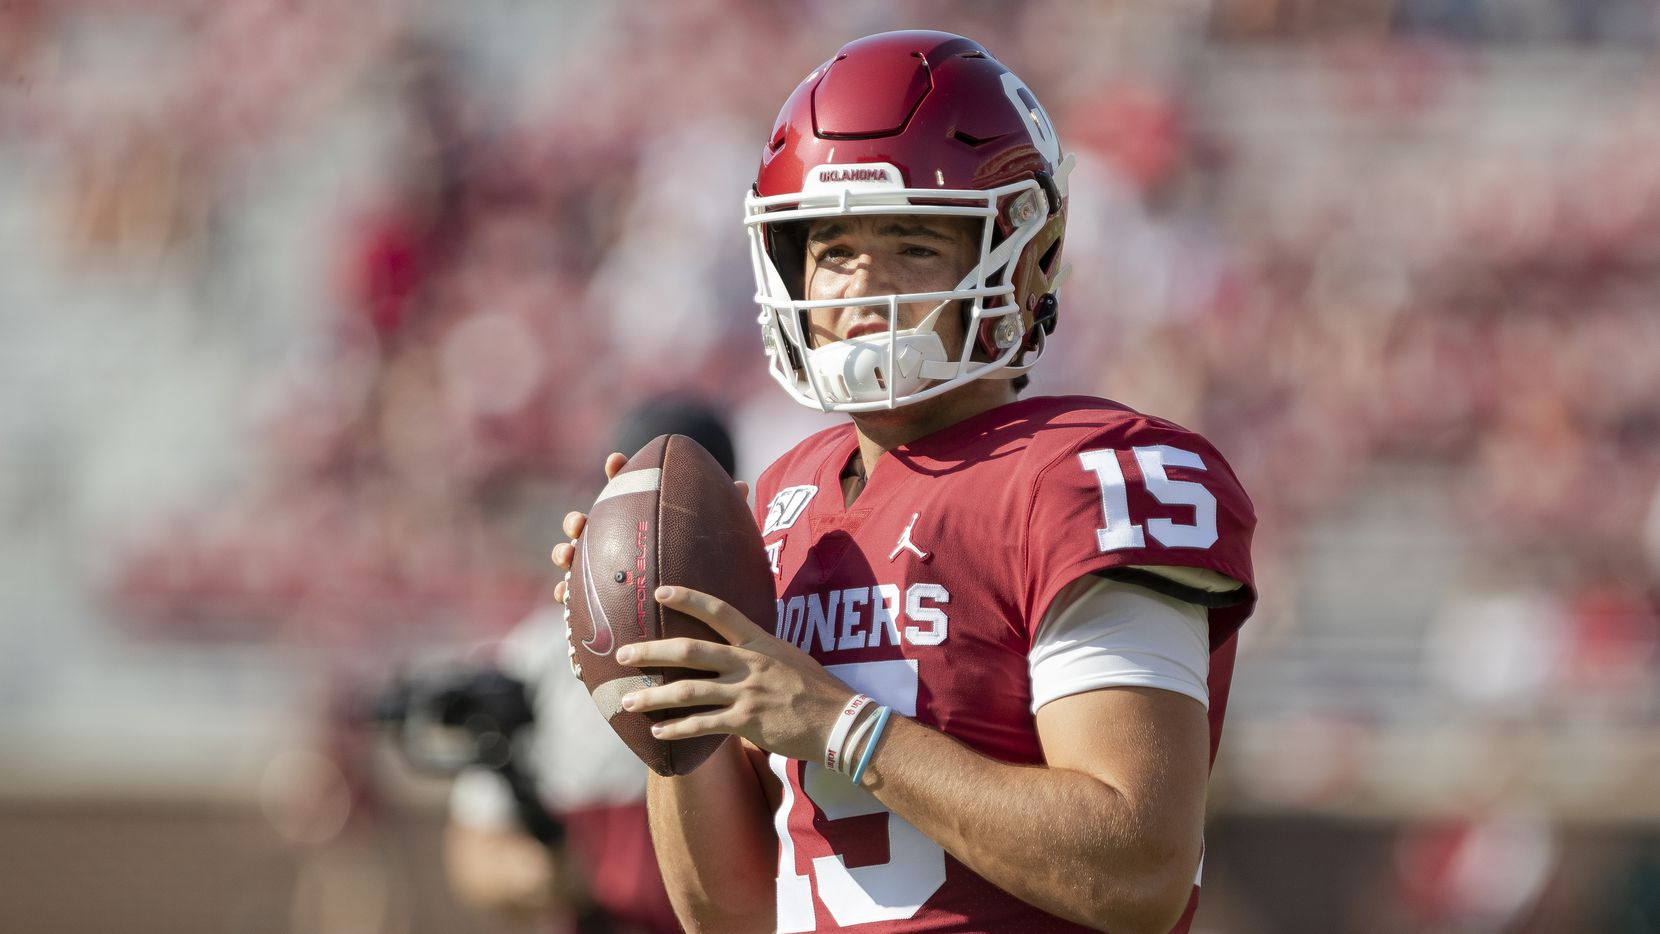 FILE - Oklahoma quarterback Tanner Mordecai (15) is pictured before the start of a game against South Dakota on Sept. 7, 2019, at Gaylord Family-Oklahoma Memorial Stadium in Norman, Okla.